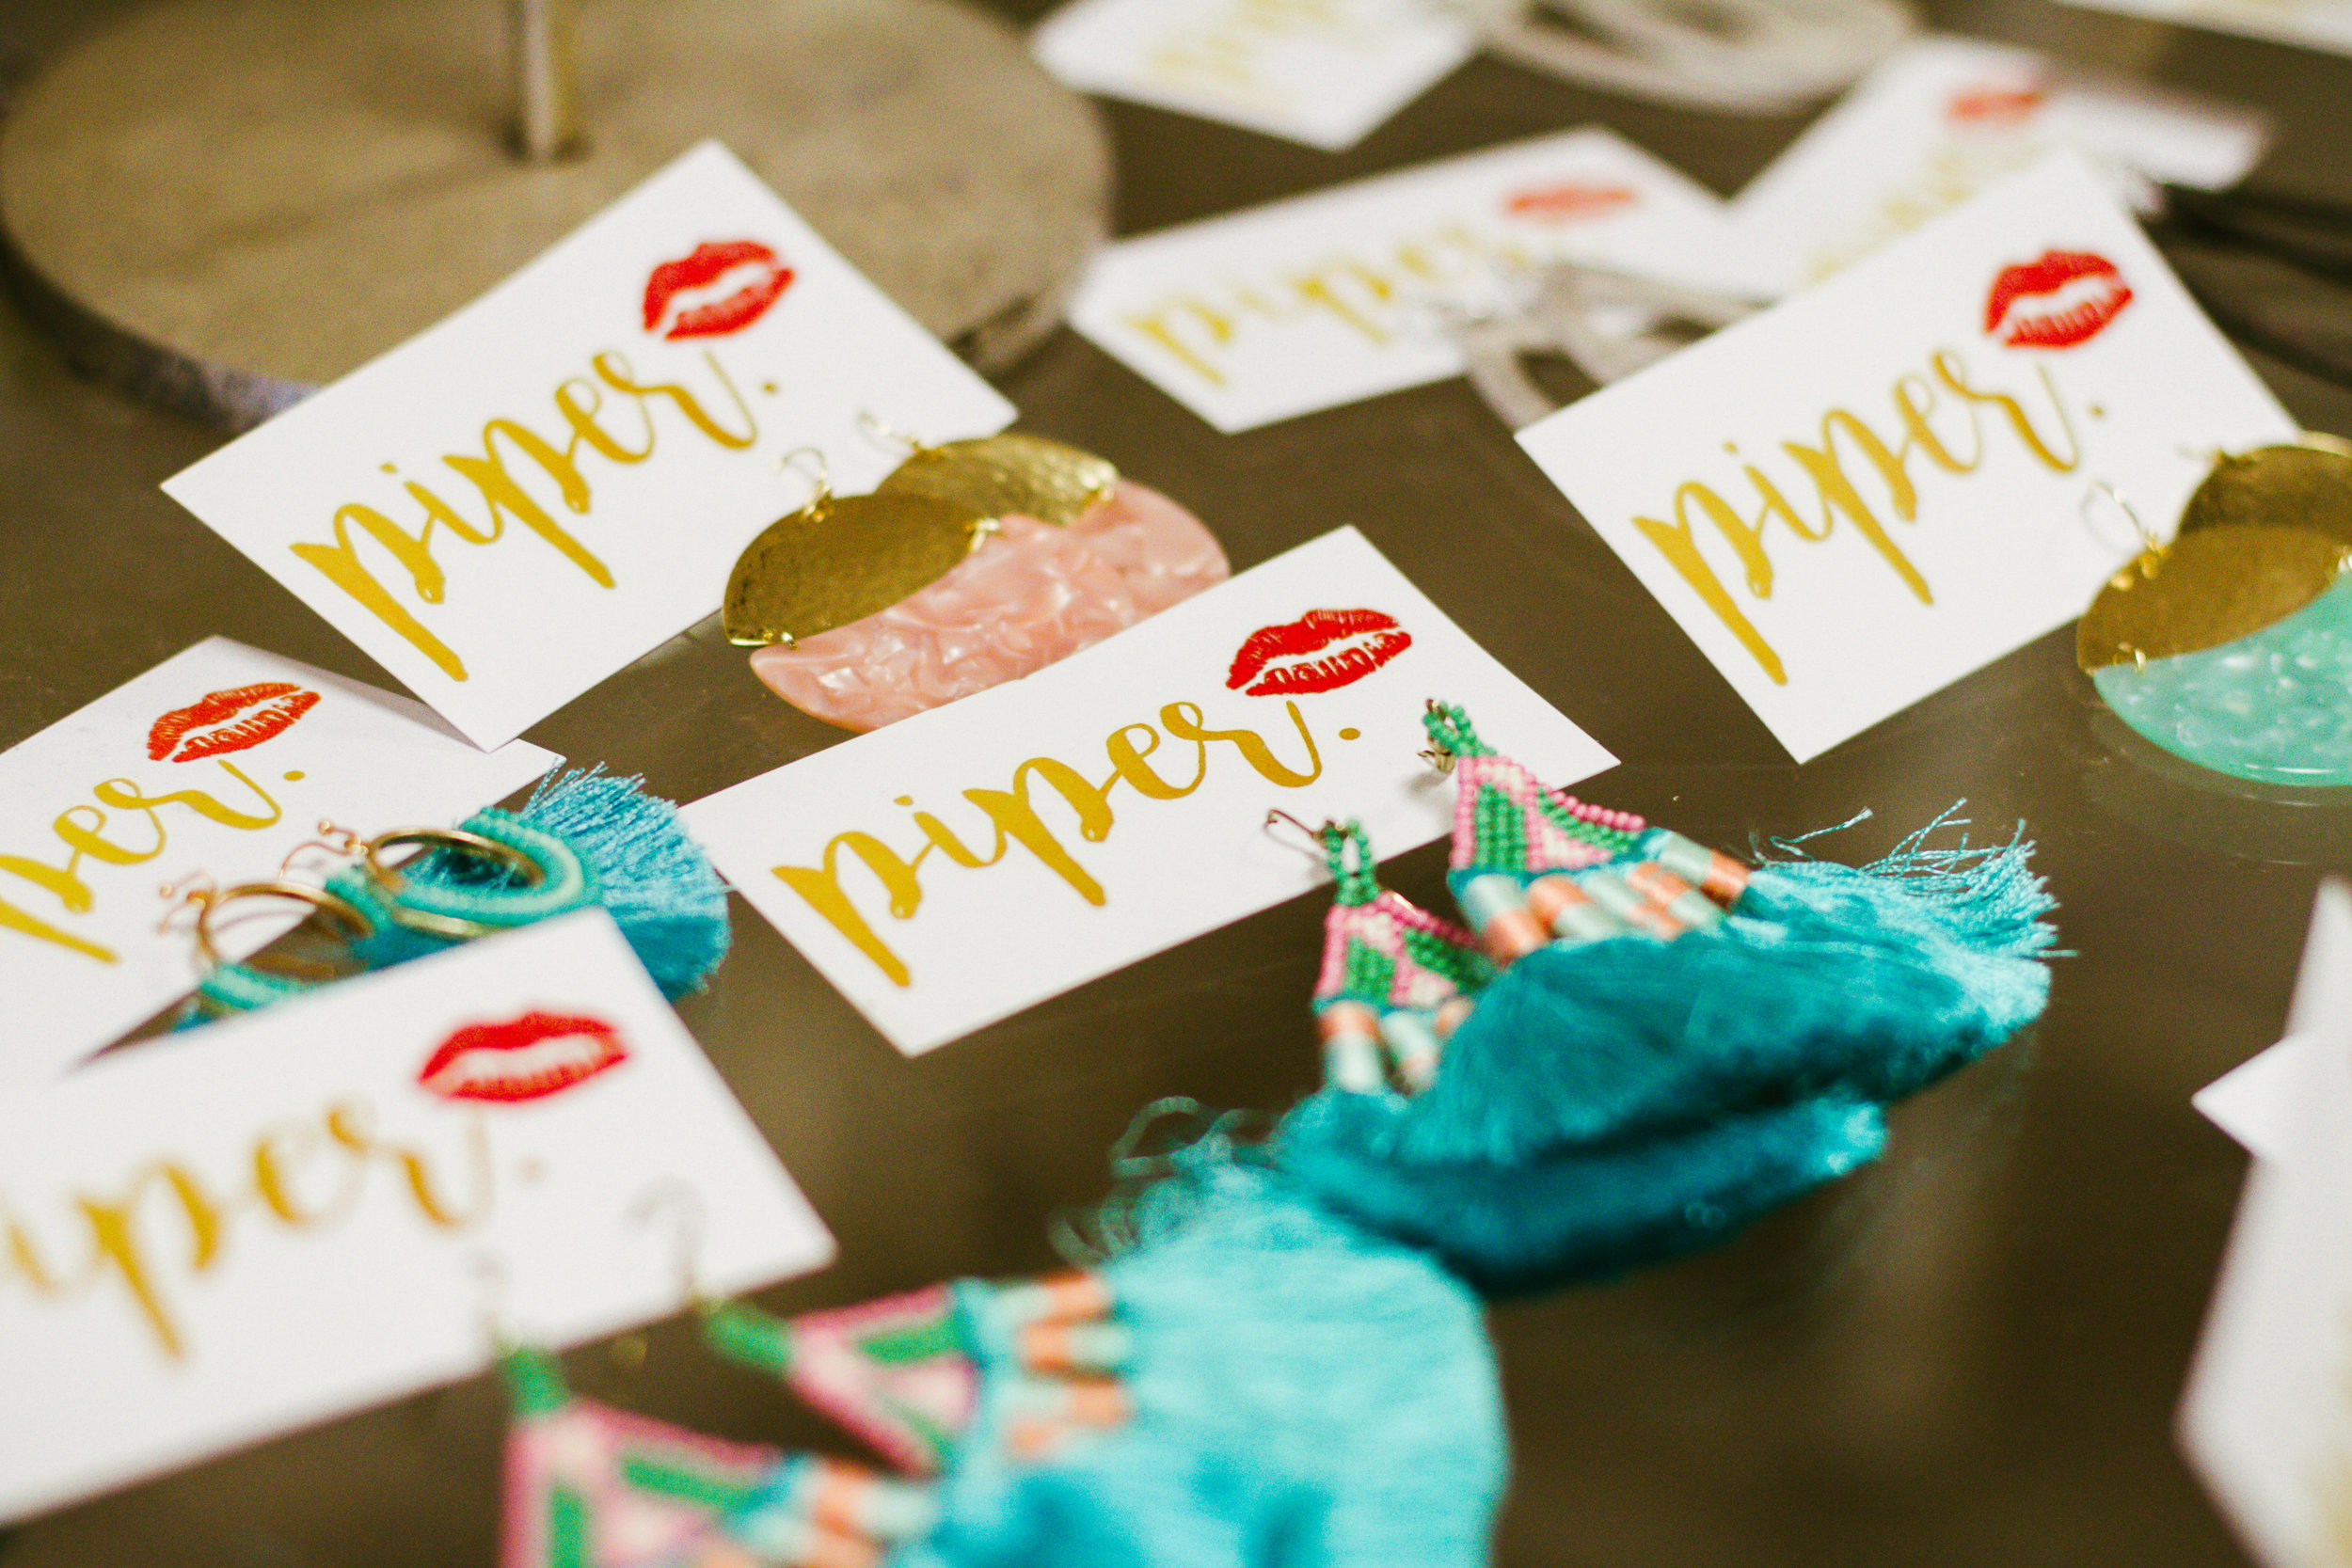 About Piper - One of Lubbock's cutest boutiques, Piper is located on Slide Road just on the north side of the South Plains Mall. With a great mix of clothing and accessories this is a go to shopping destination for many high school and college aged women.